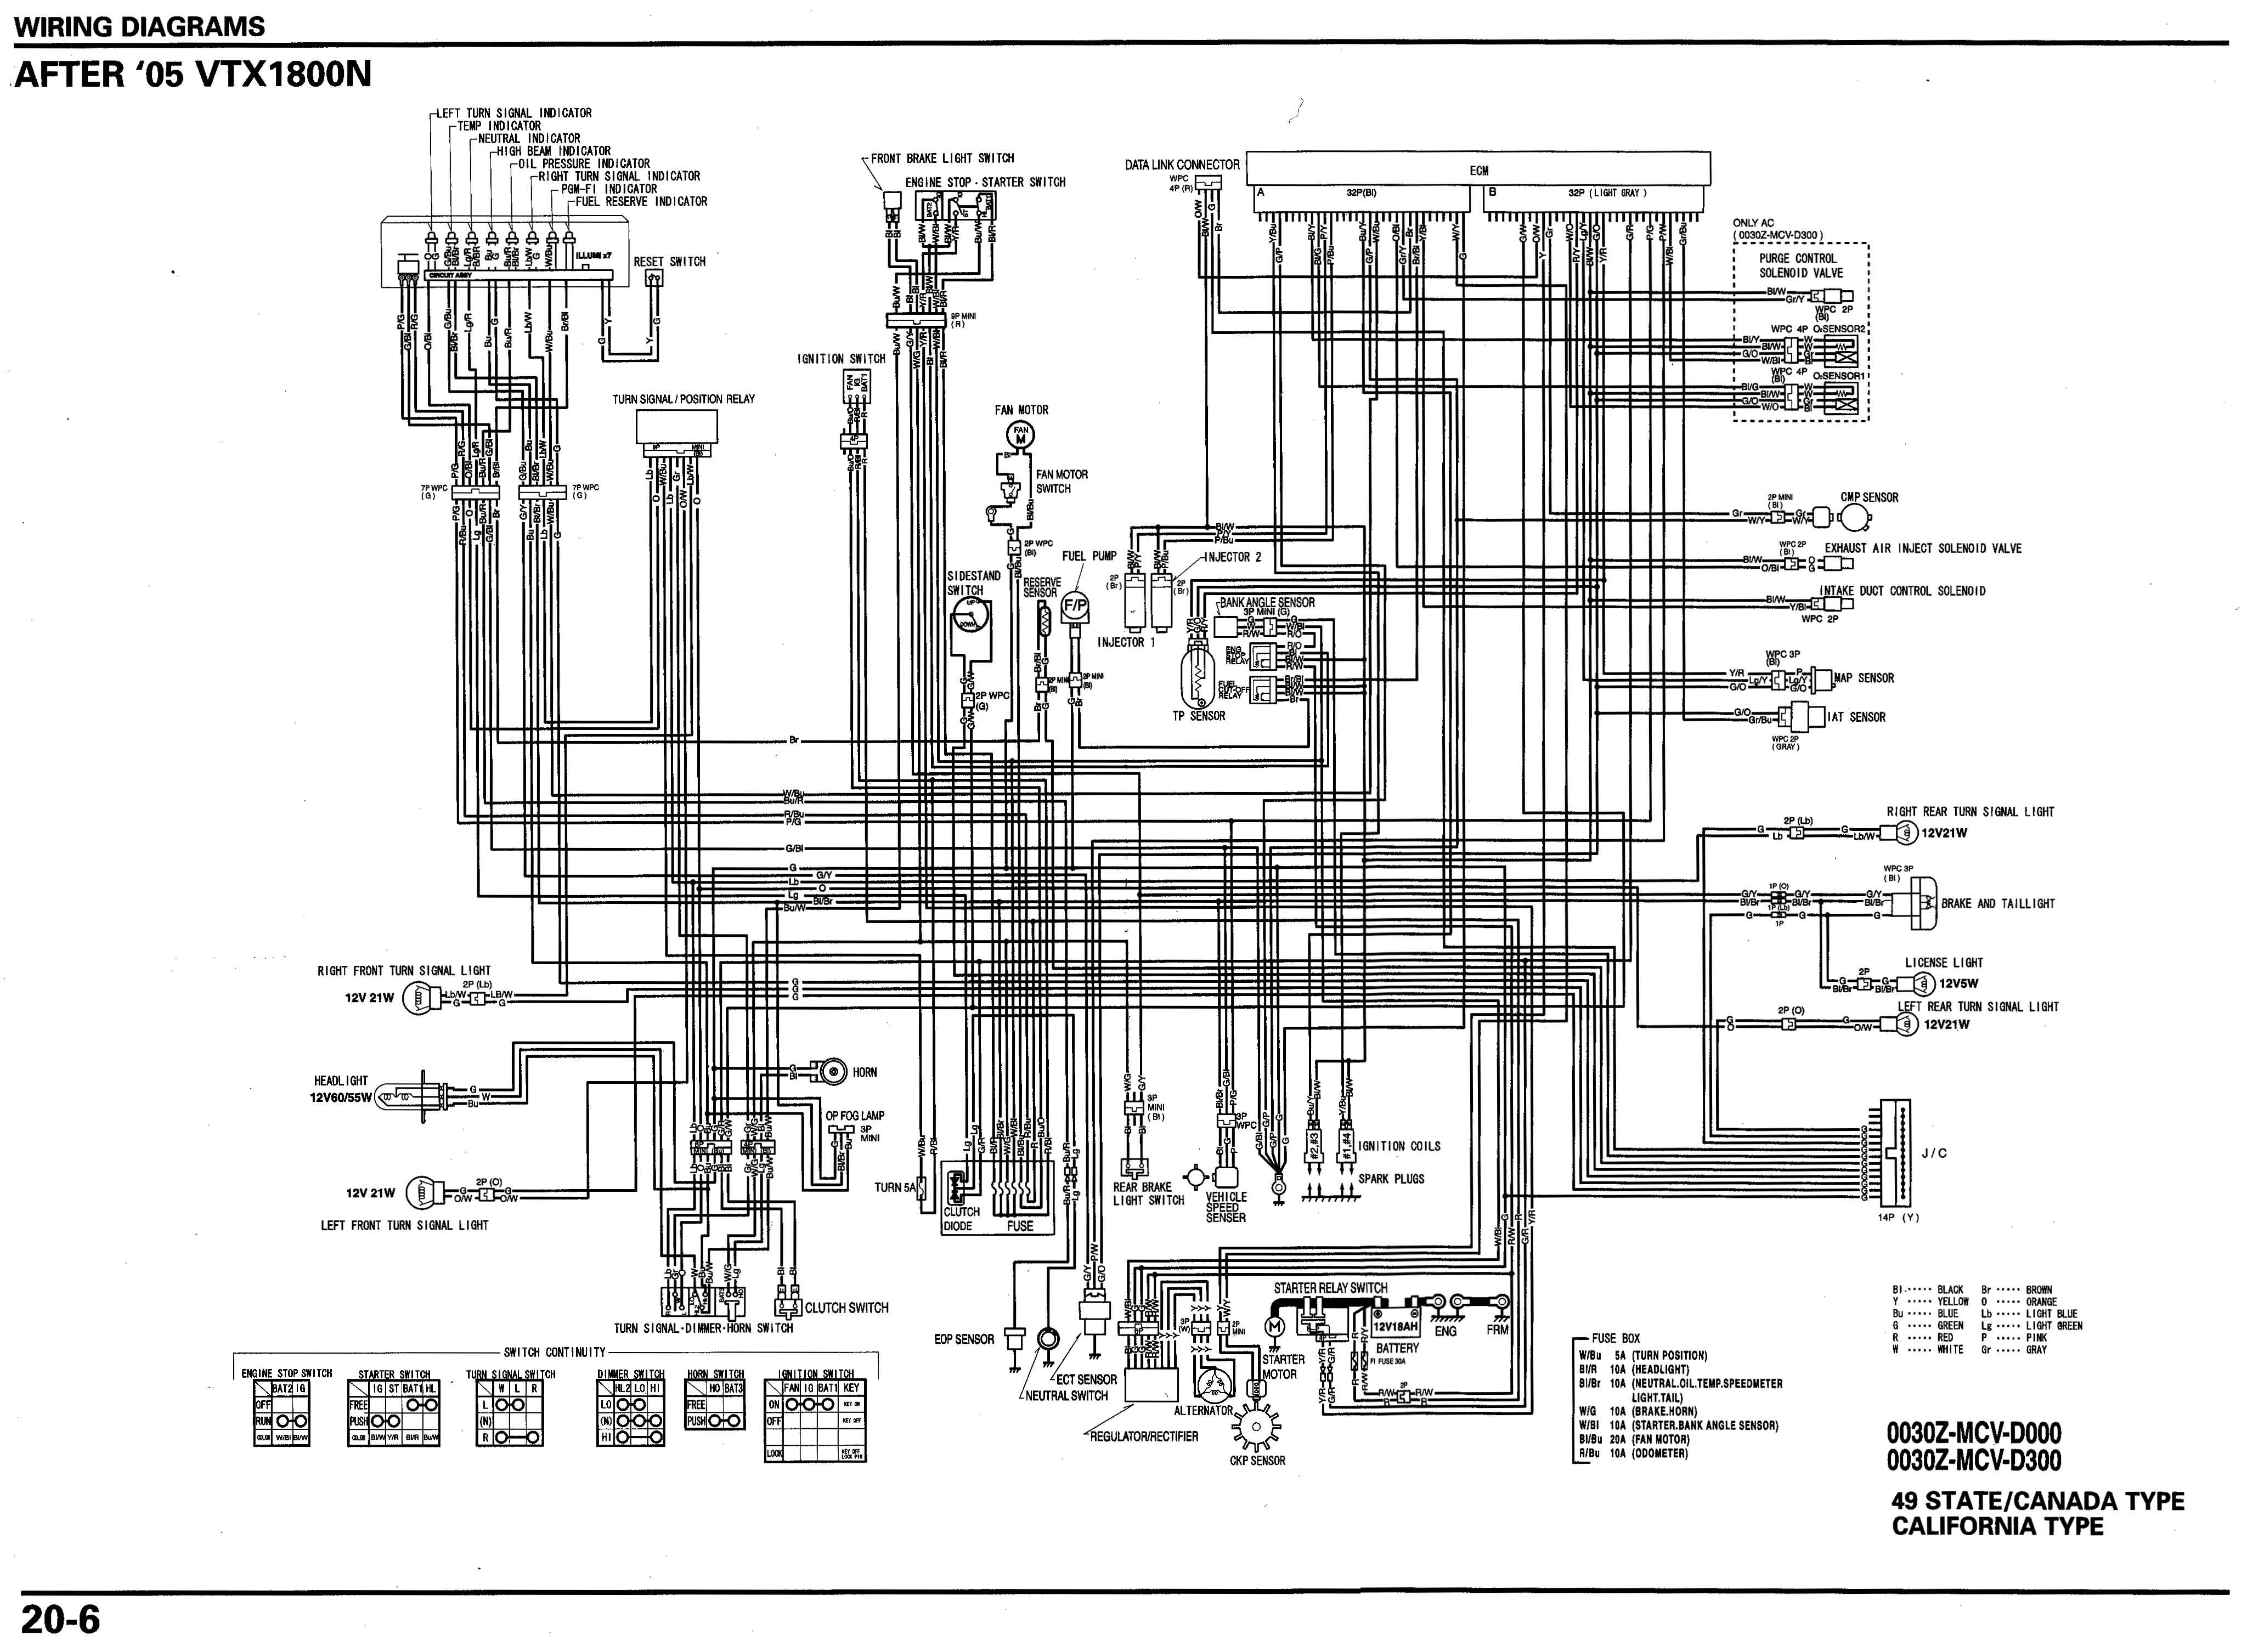 06+_VTX1800_N_schematic motorcycle wire schematics bareass choppers motorcycle tech pages wiring diagram for victory motorcycles at fashall.co